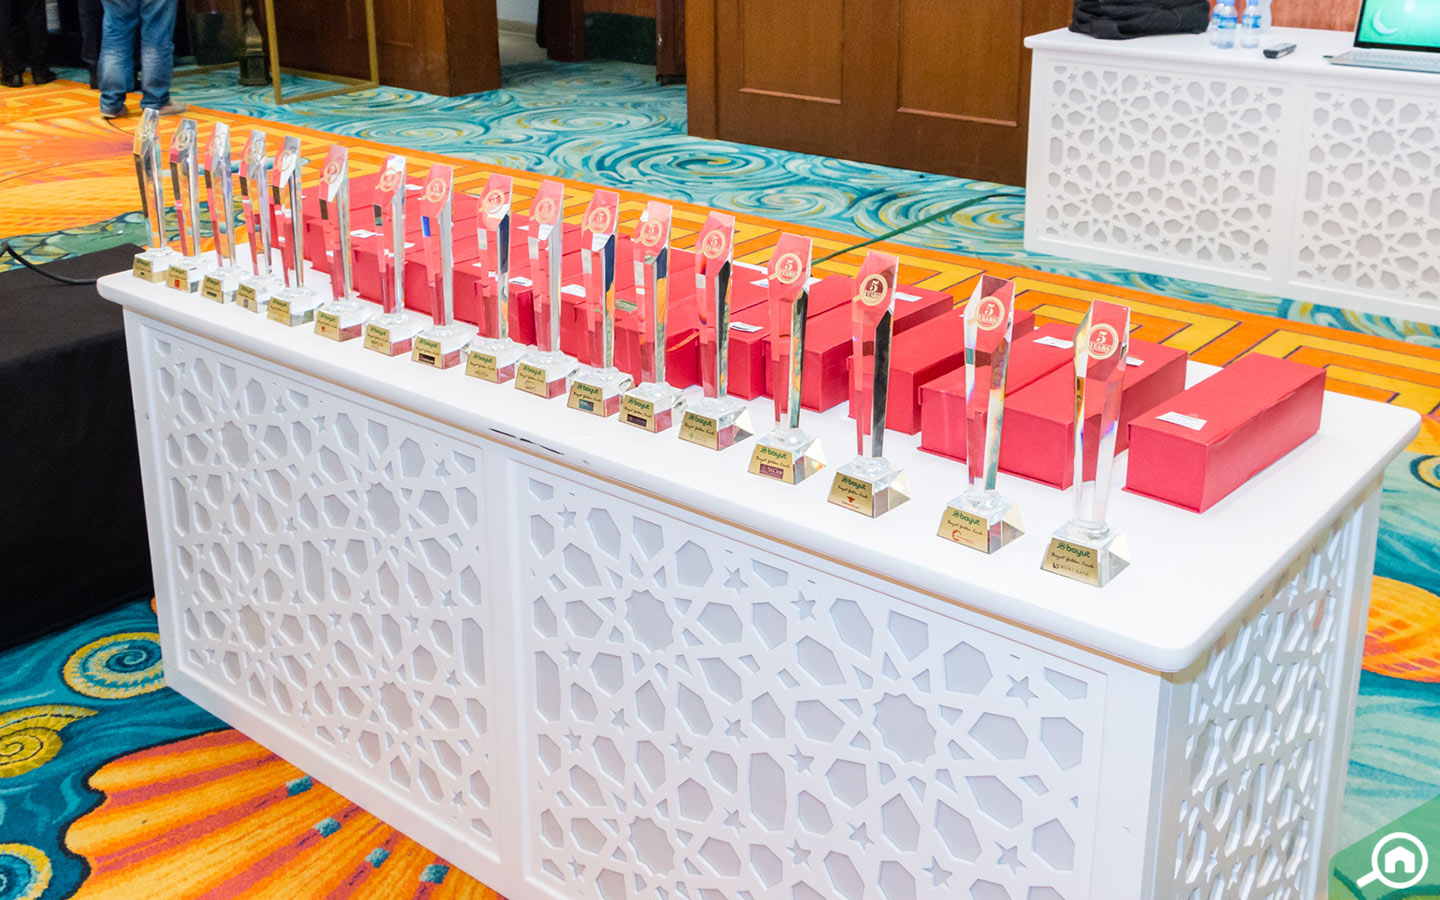 The trophies of the Golden Circle Award lined up to be given away to Dubai real estate agencies.